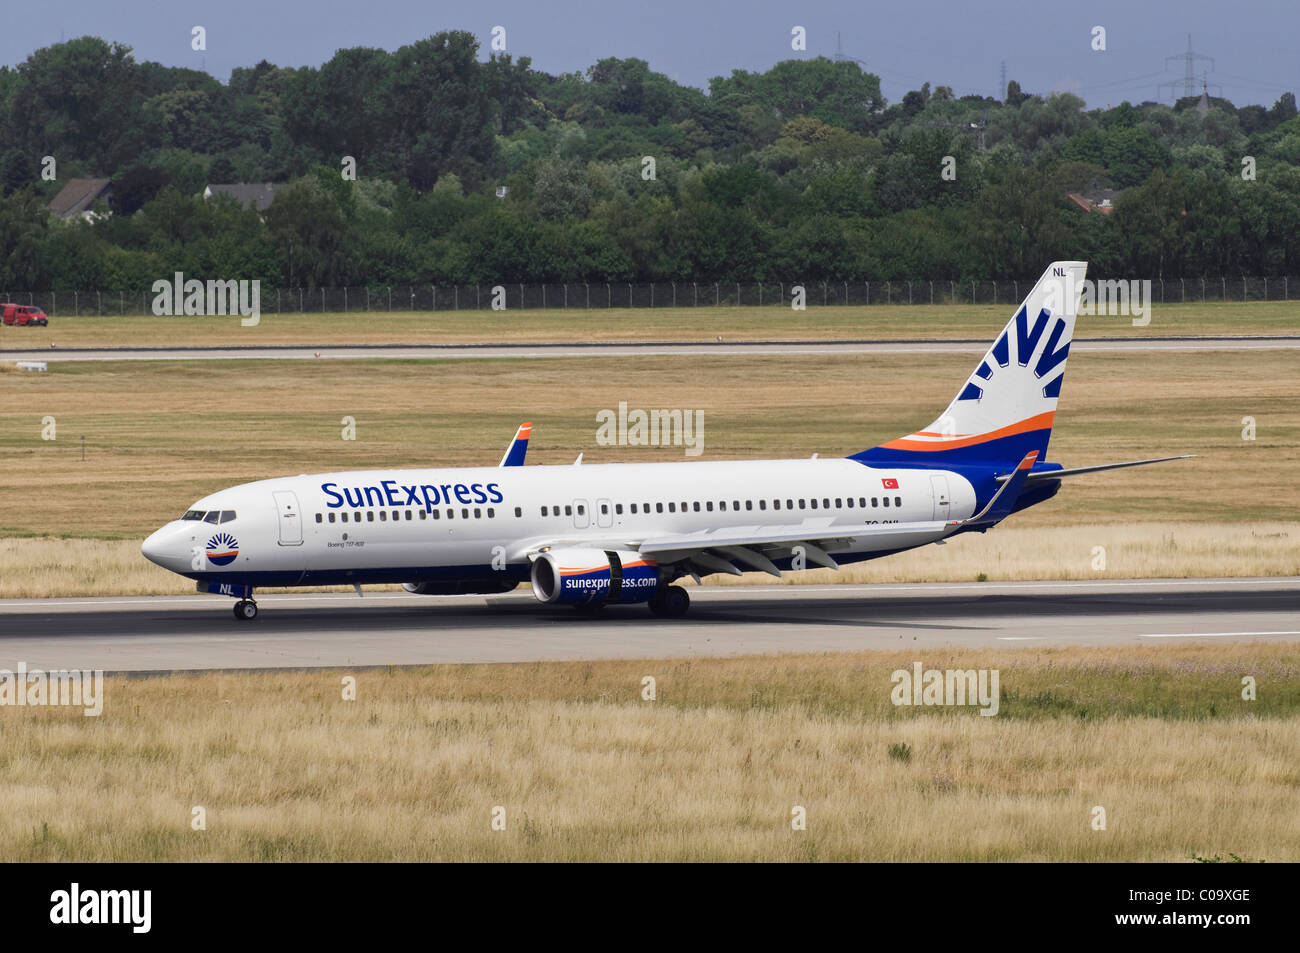 SunExpress aircraft, Boeing 737-800, on the runway of Duesseldorf Airport, North Rhine-Westphalia, Germany, Europe - Stock Image